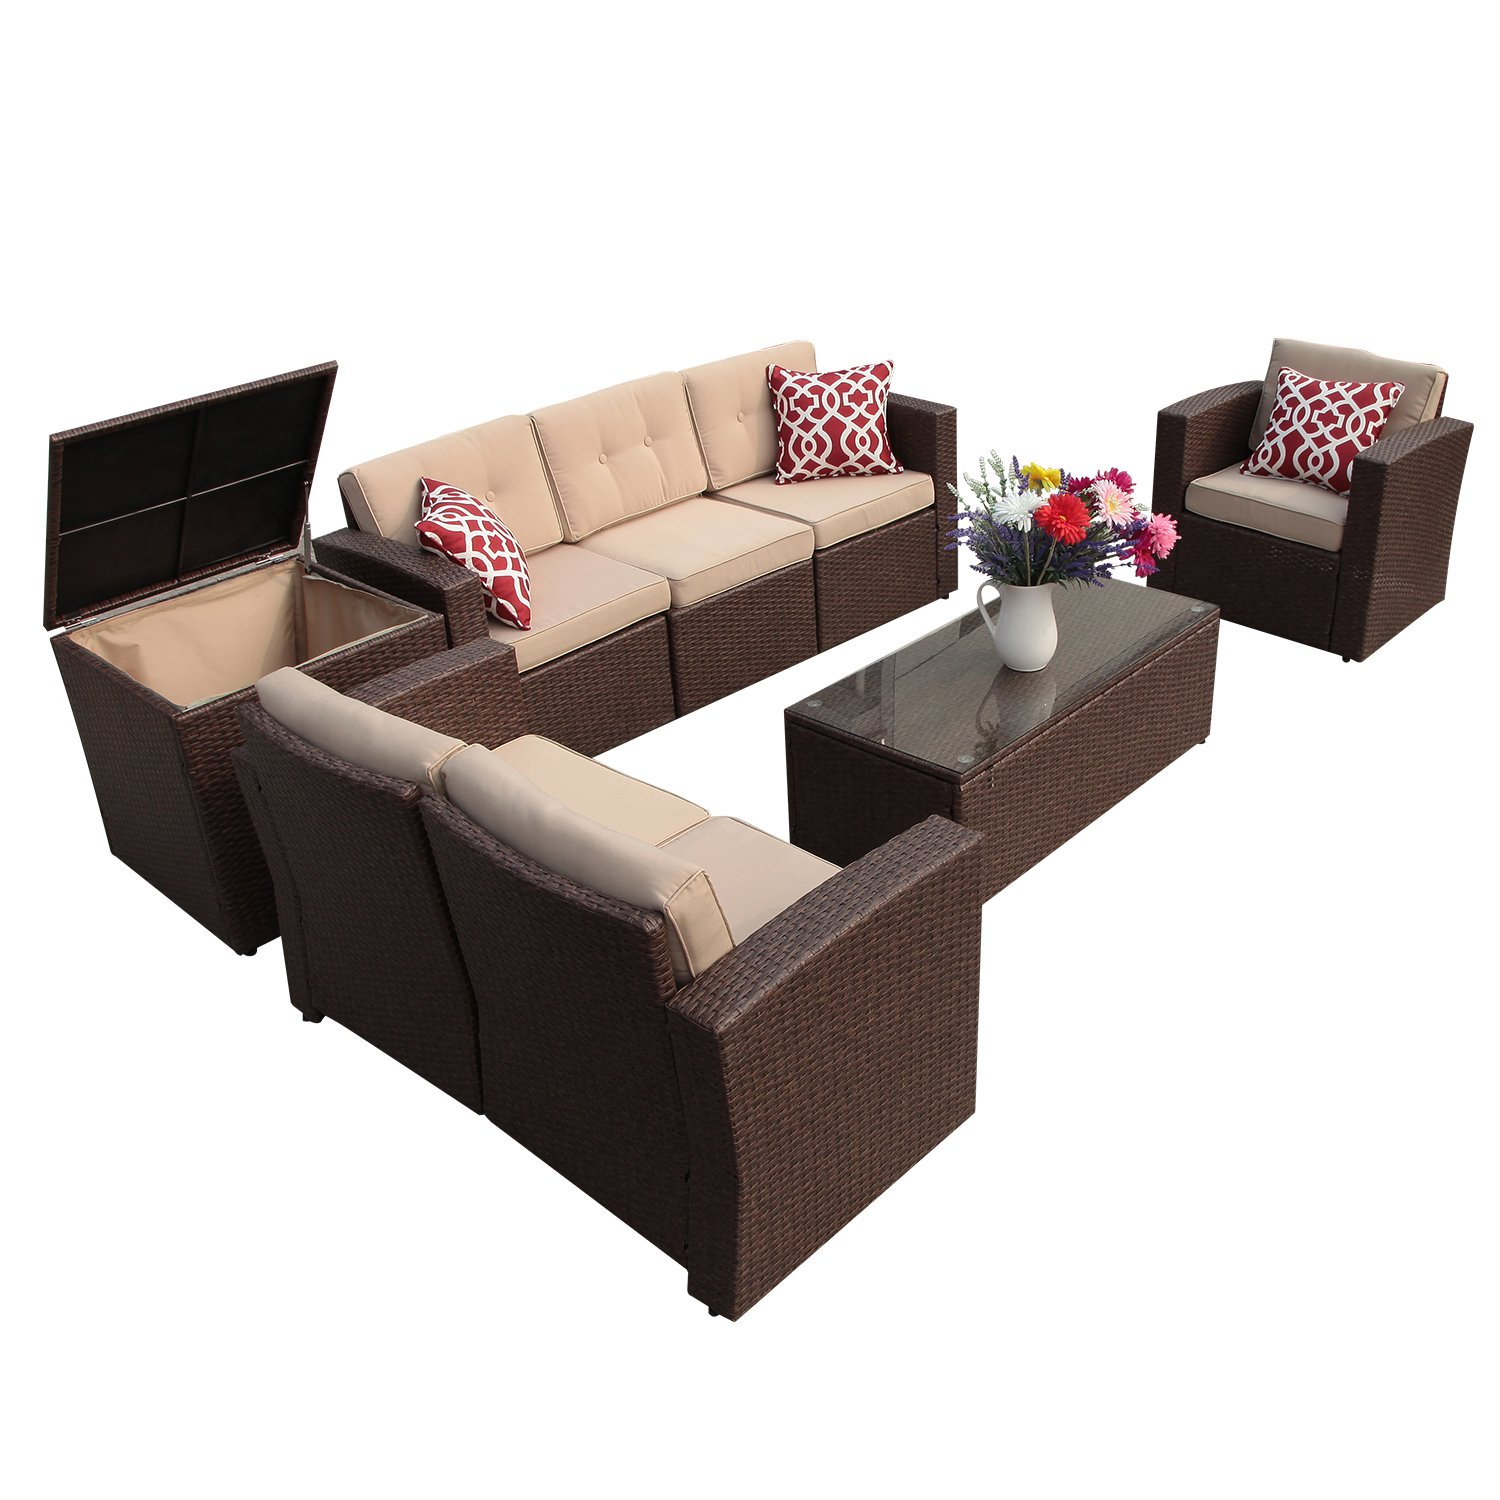 Super Patio Patio Furniture, 8 Piece Outdoor Furniture Set Wicker Sectional Furniture with Storage Table, Beige Cushions, ...